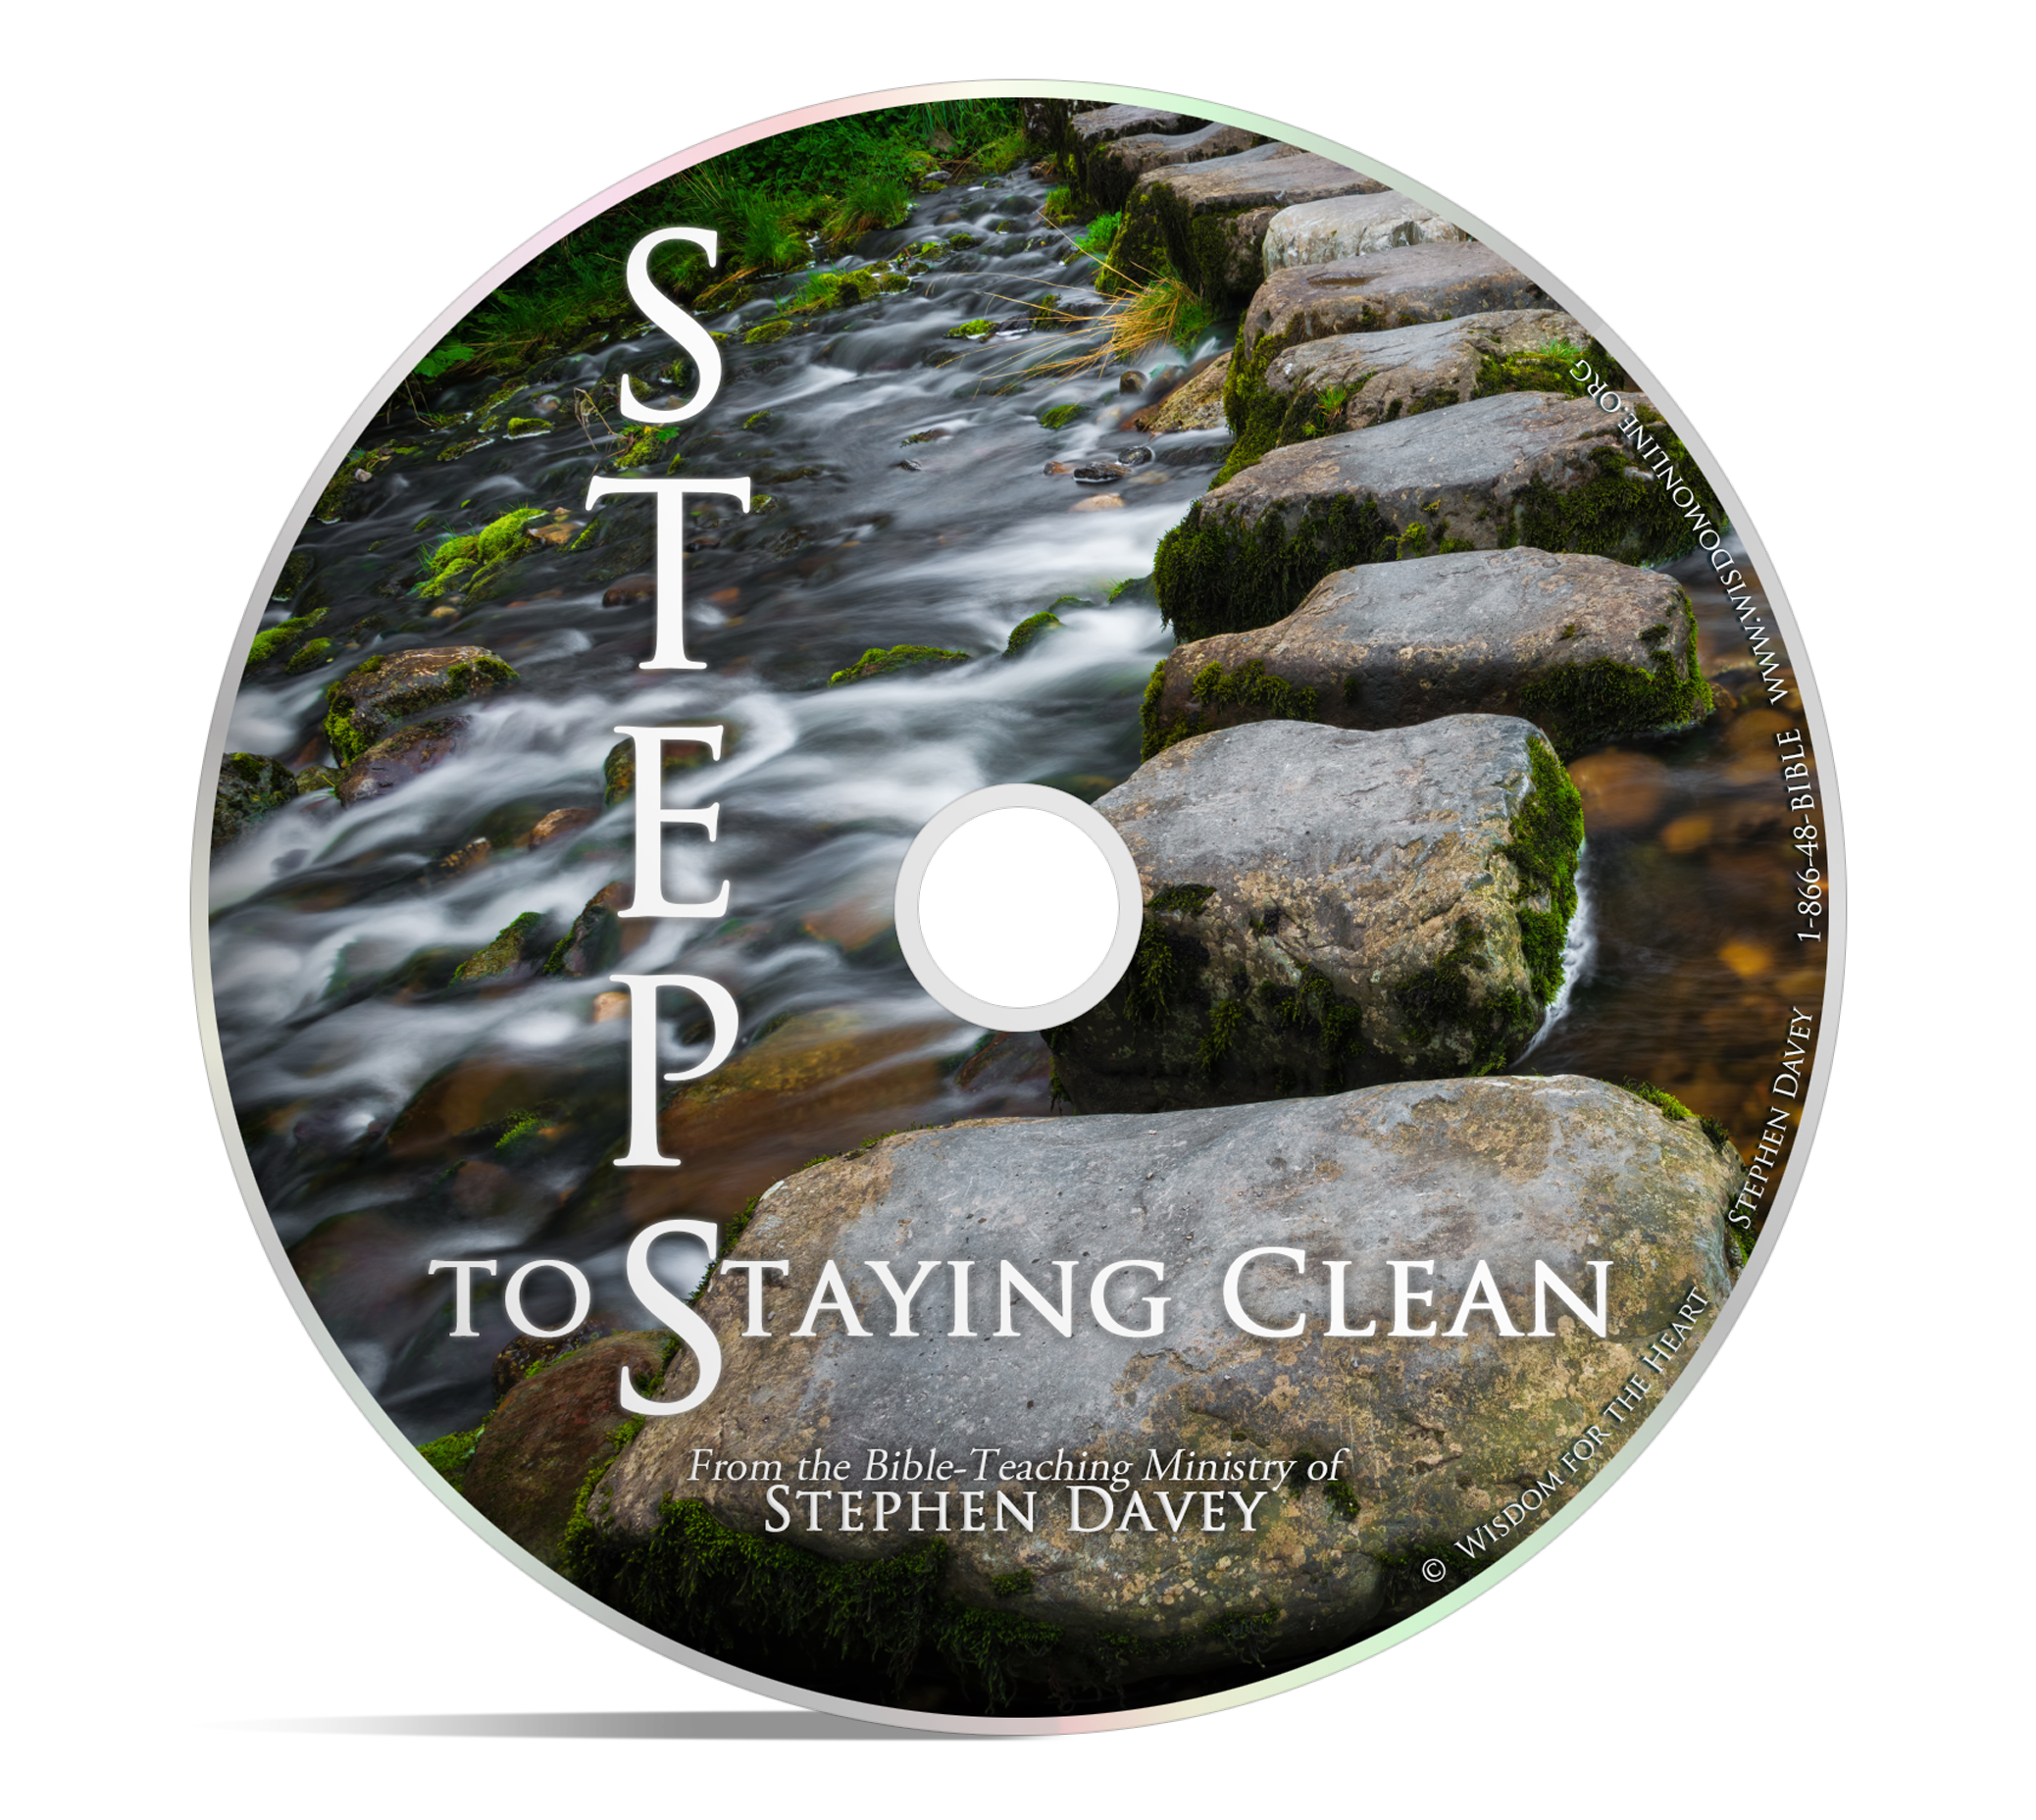 Steps to Staying Clean